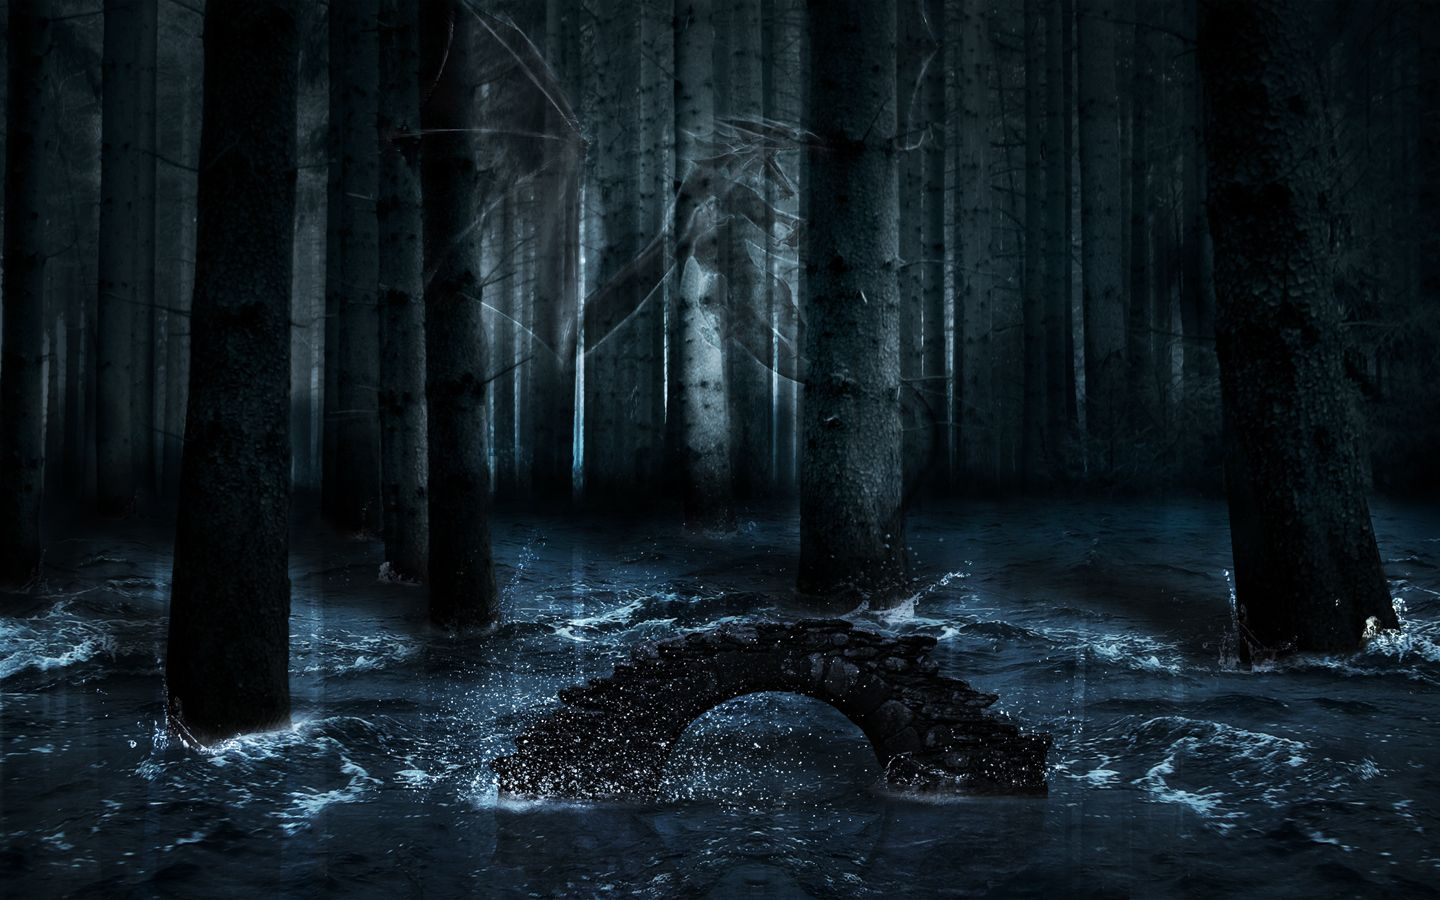 29 Dark Forest With Moon Wallpapers On Wallpapersafari Dark forest background available in hd, 4k resolutions for desktop and smart devices. 29 dark forest with moon wallpapers